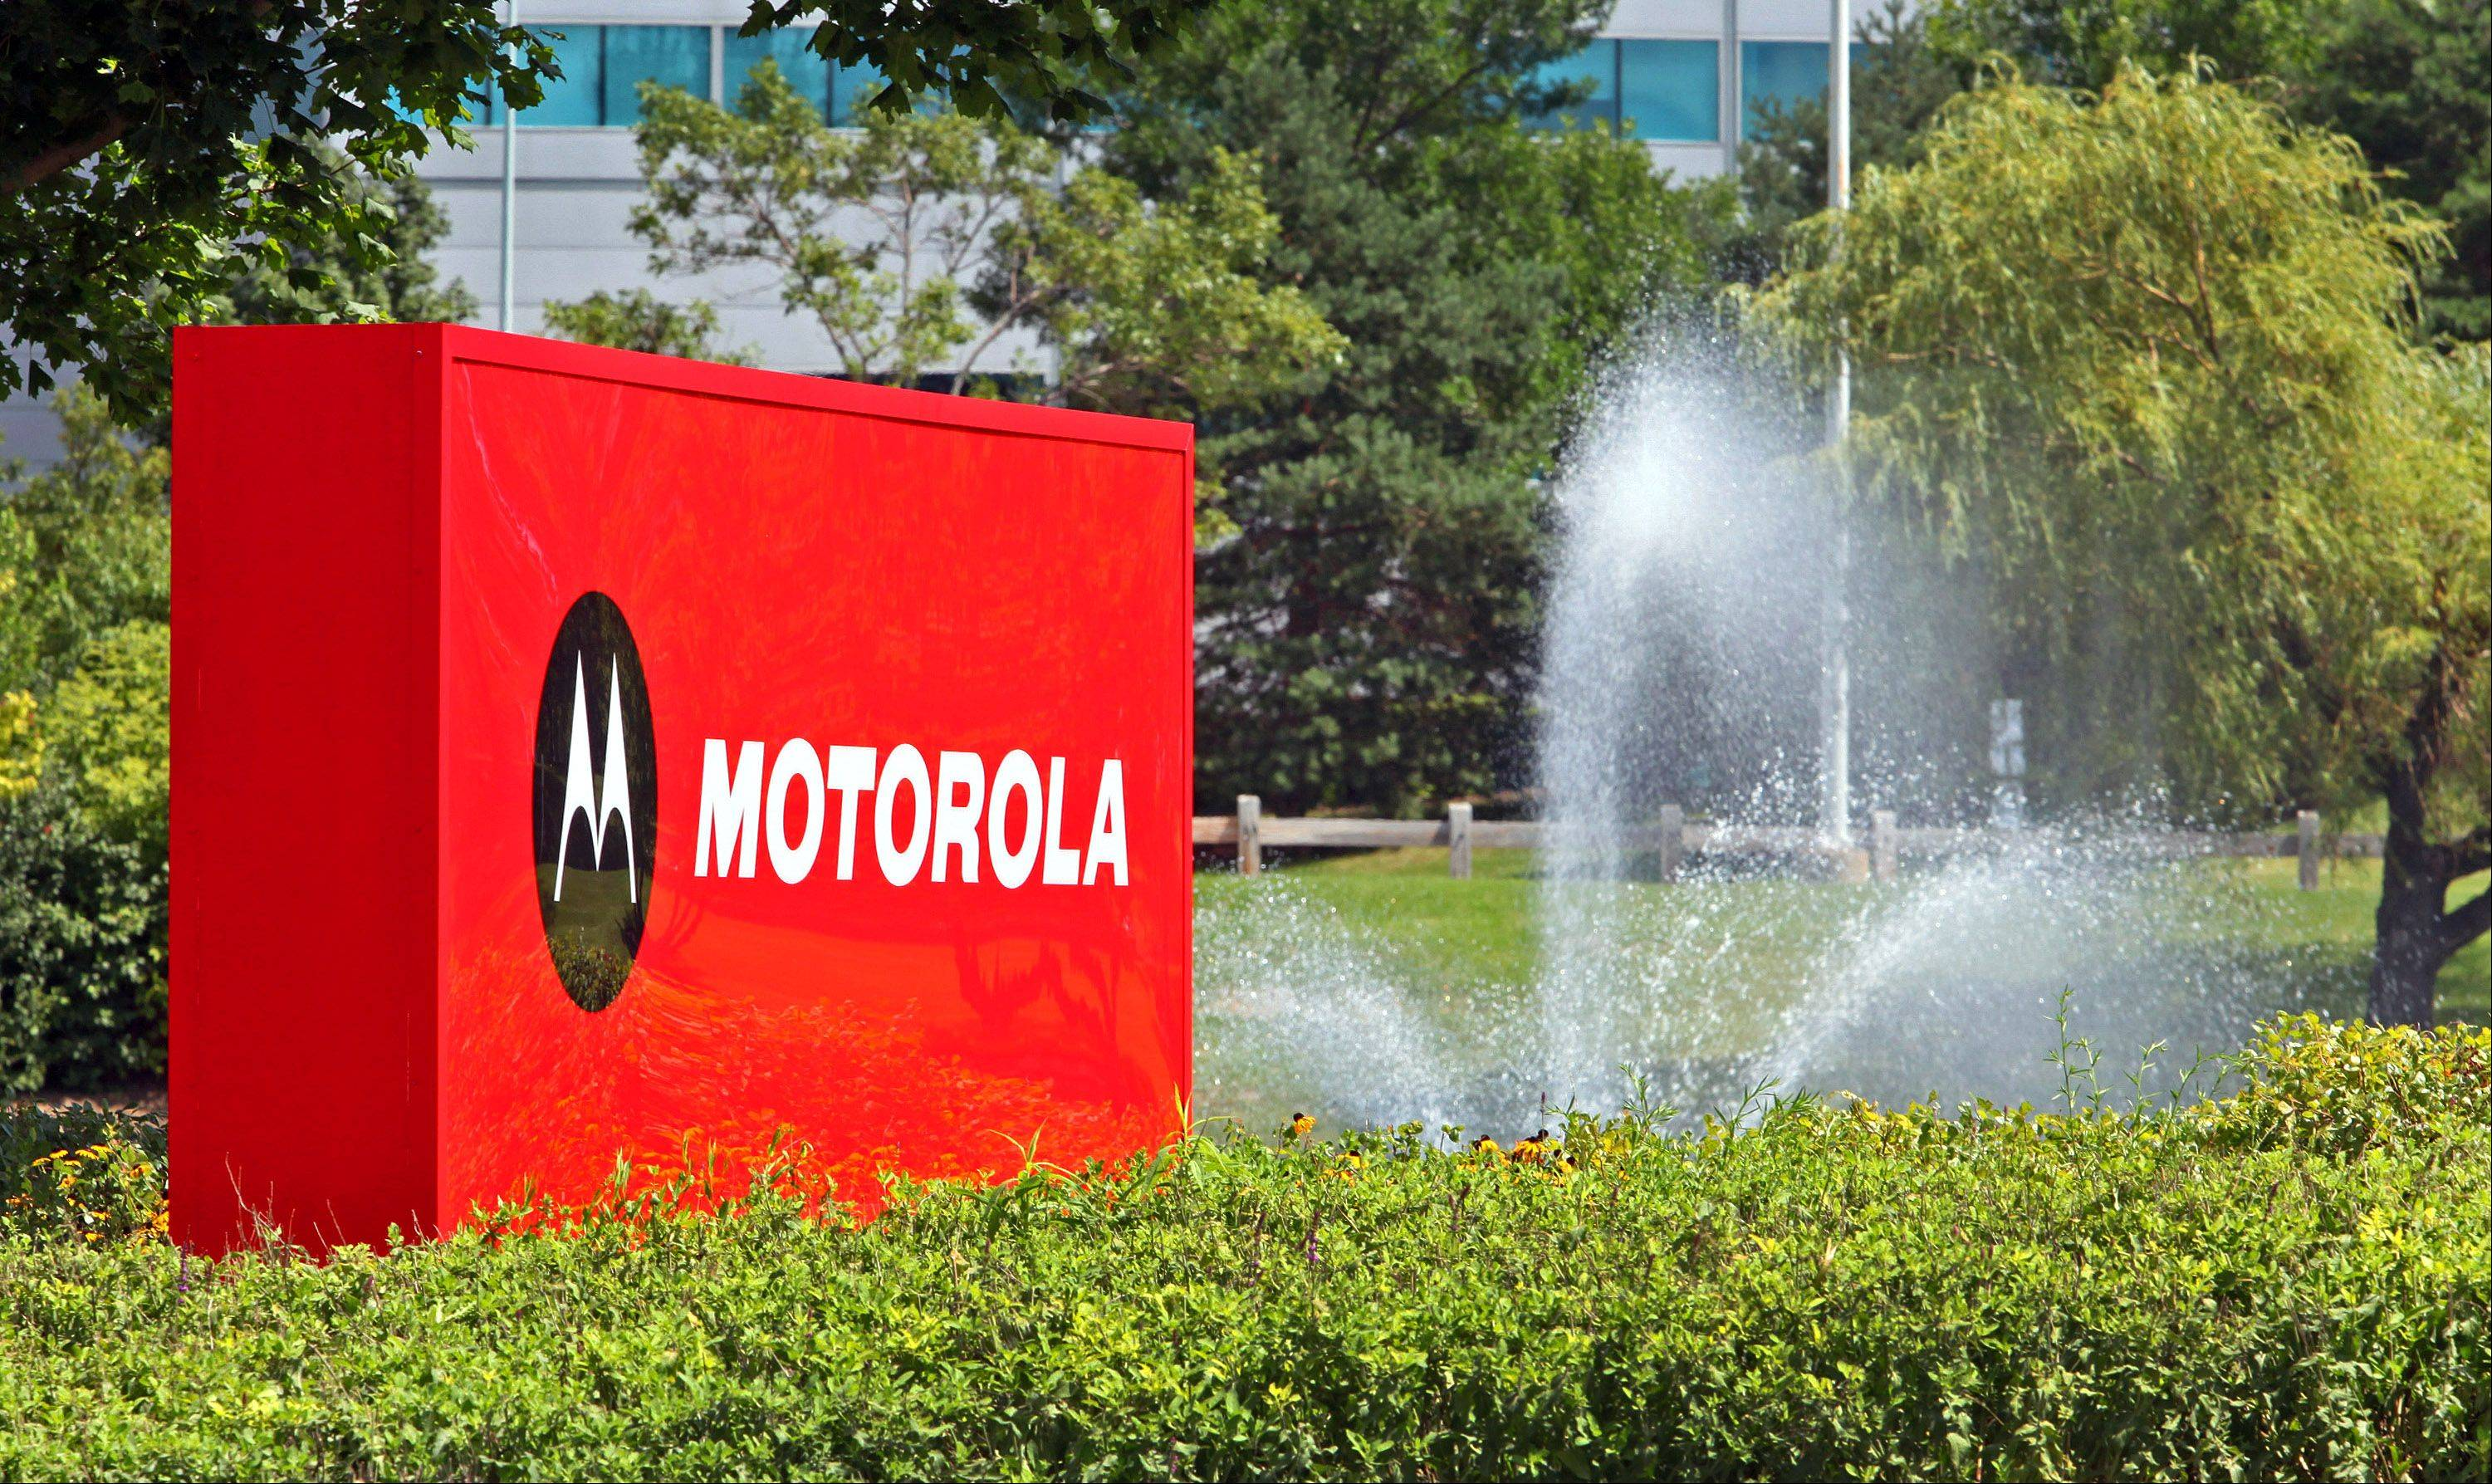 Google�s purchase of Motorola Mobility for $12.5 billion will net it mobile patents and expand its hardware business.